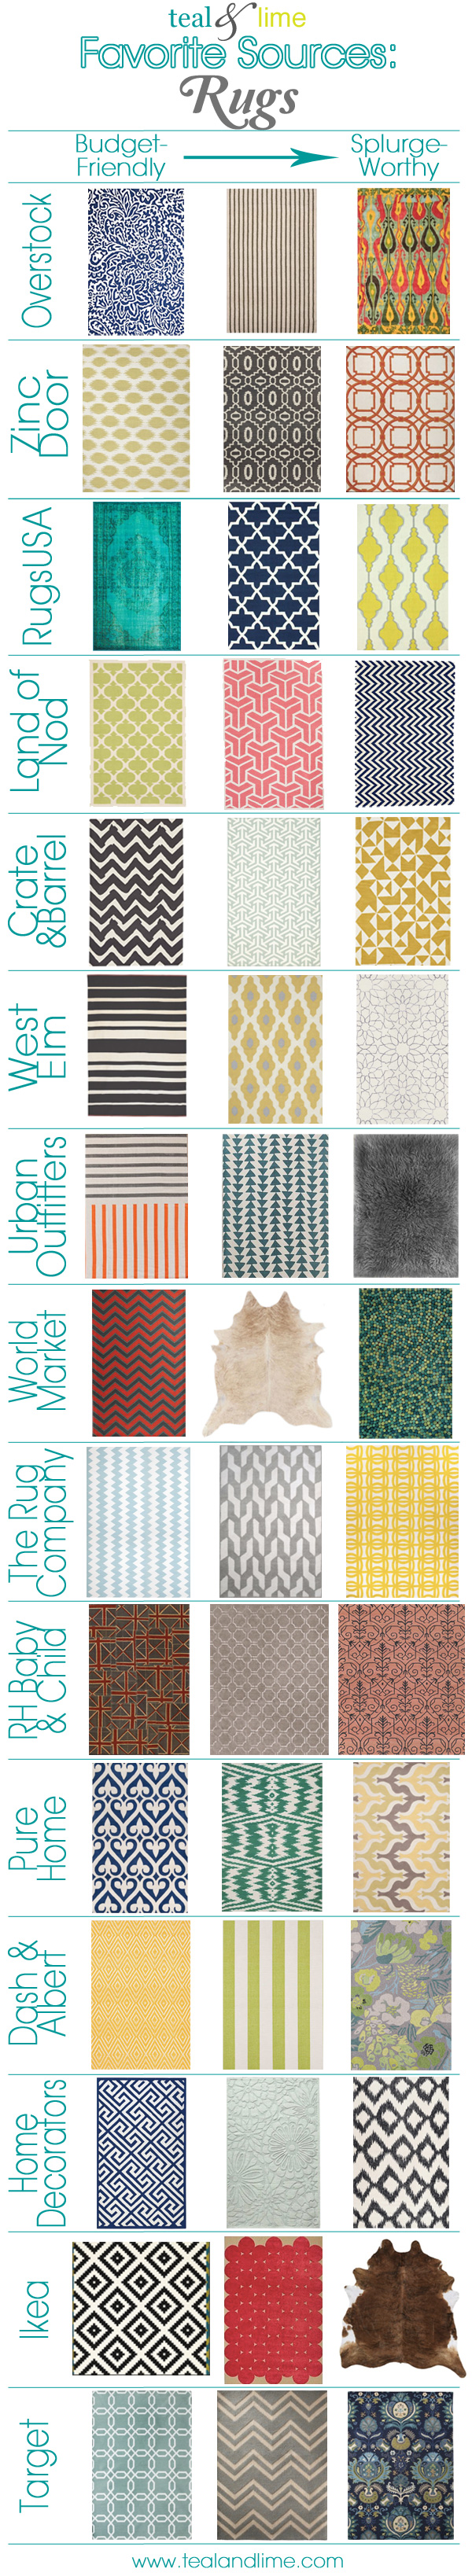 Favorite Sources for Area Rugs